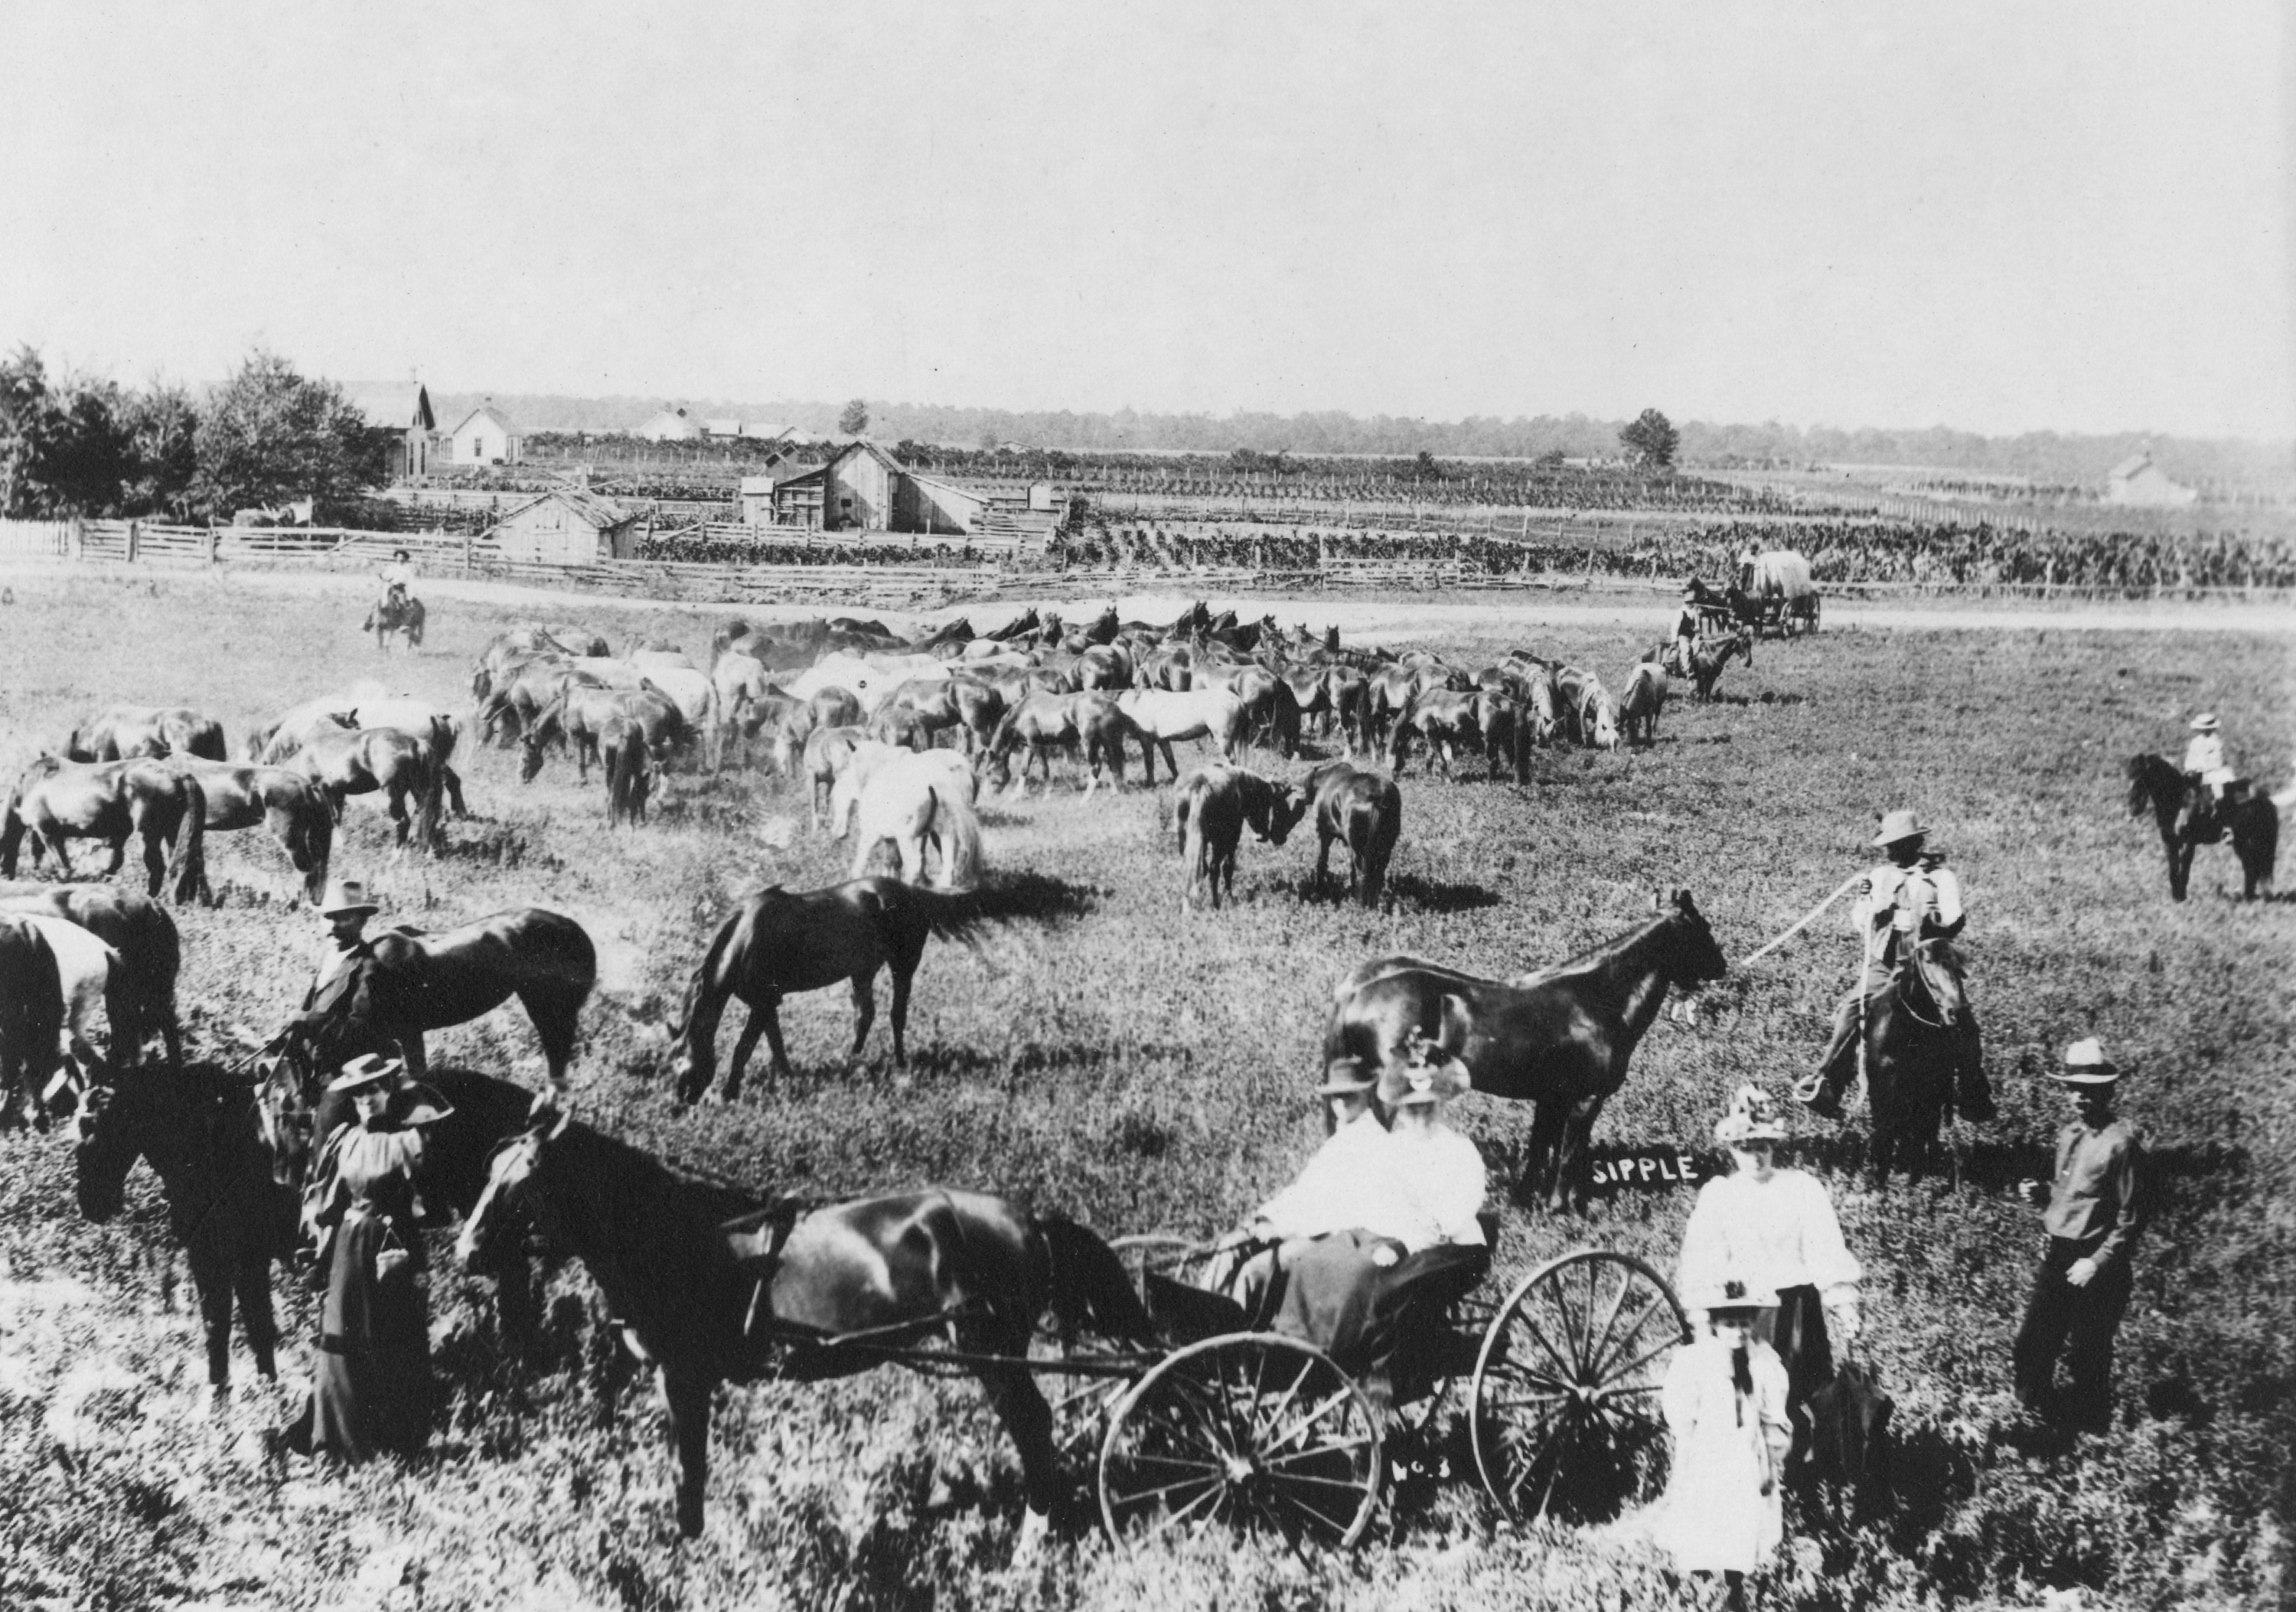 photo of horses and people at Wilkins Ranch, Bruneau Valley, Owyhee County, ID, ca. 1900